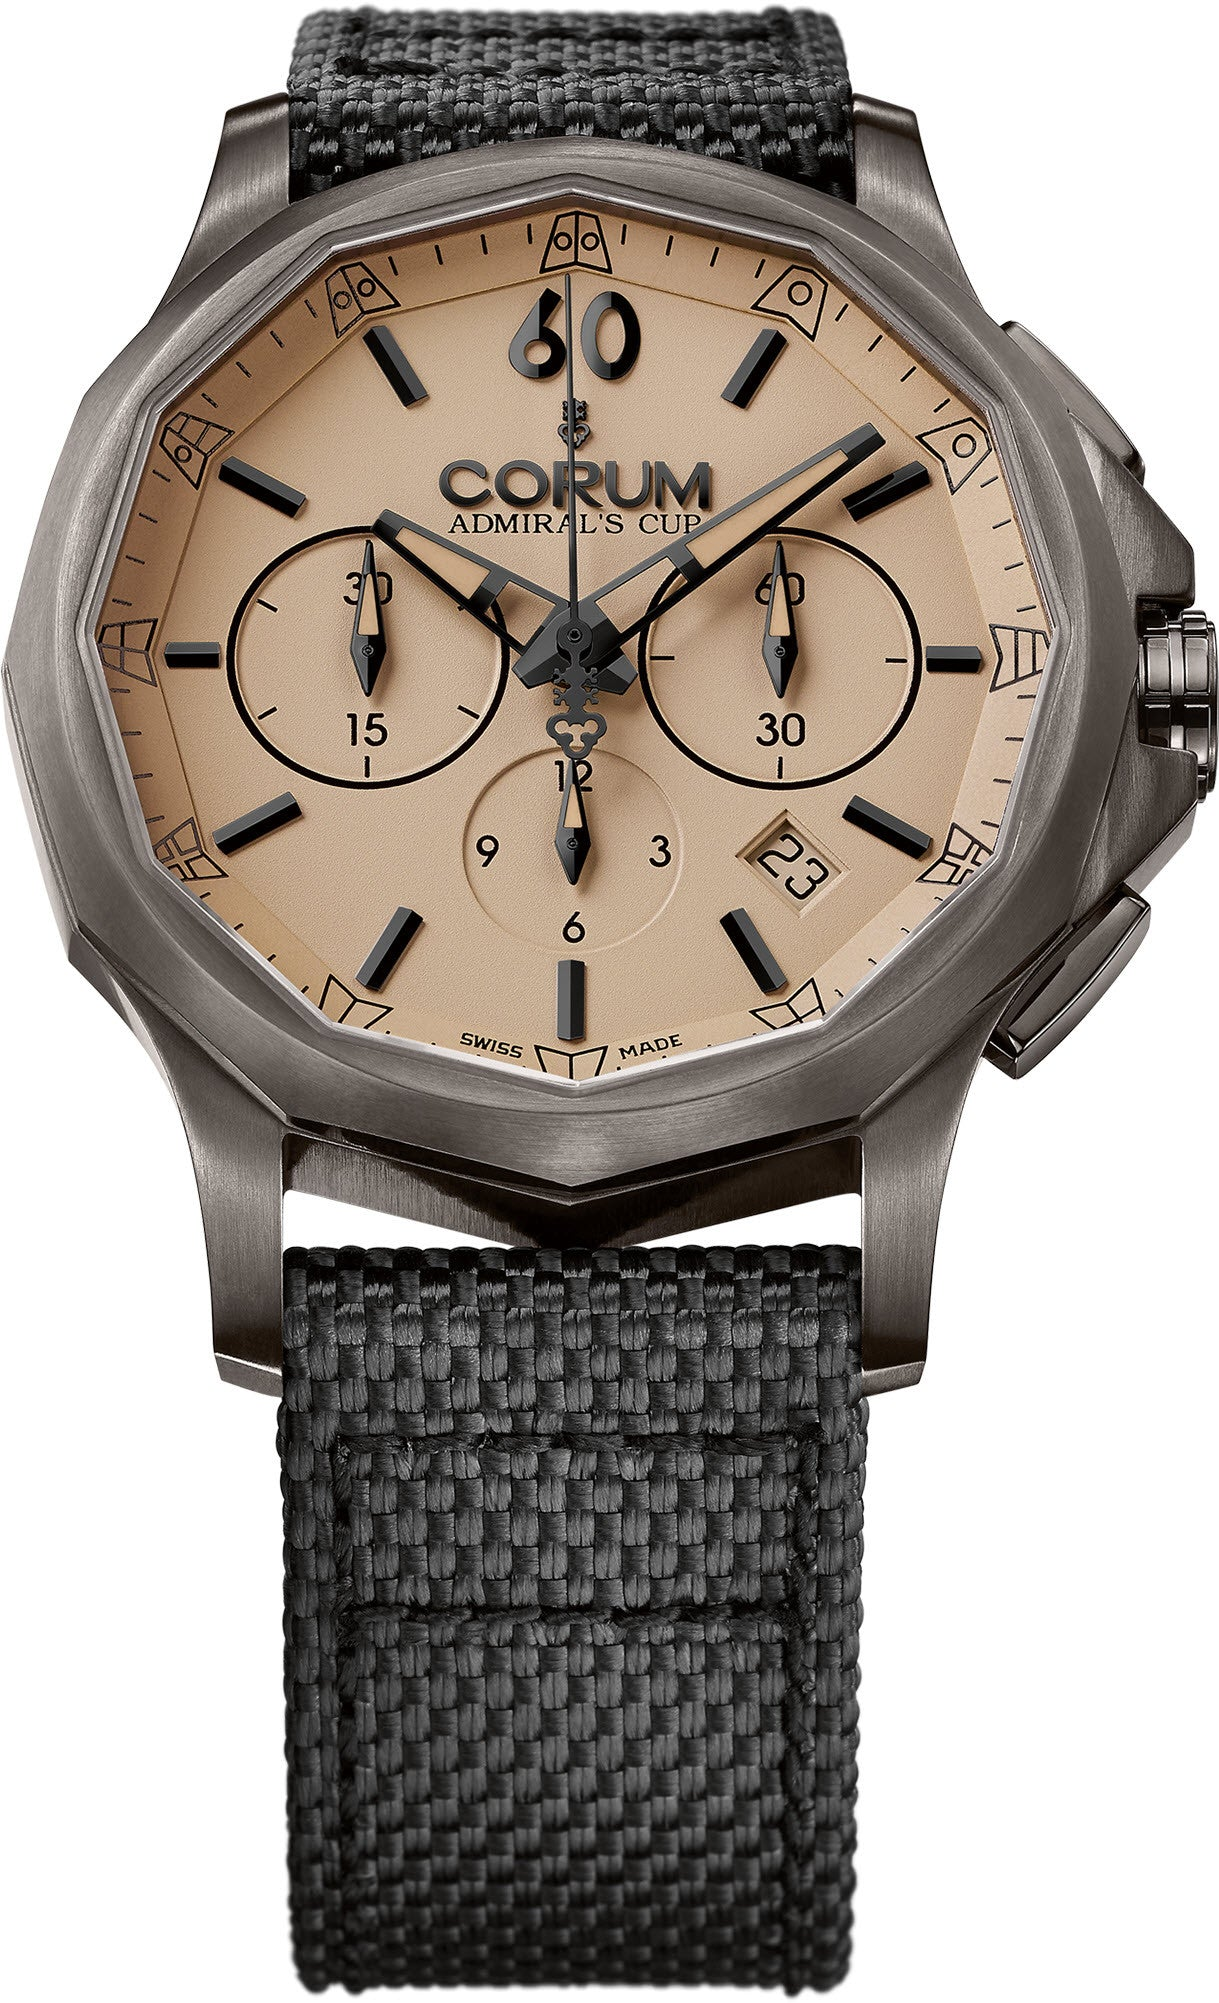 Bargain Corum Watch Admirals Cup Legend 42 Chronograph Stockists